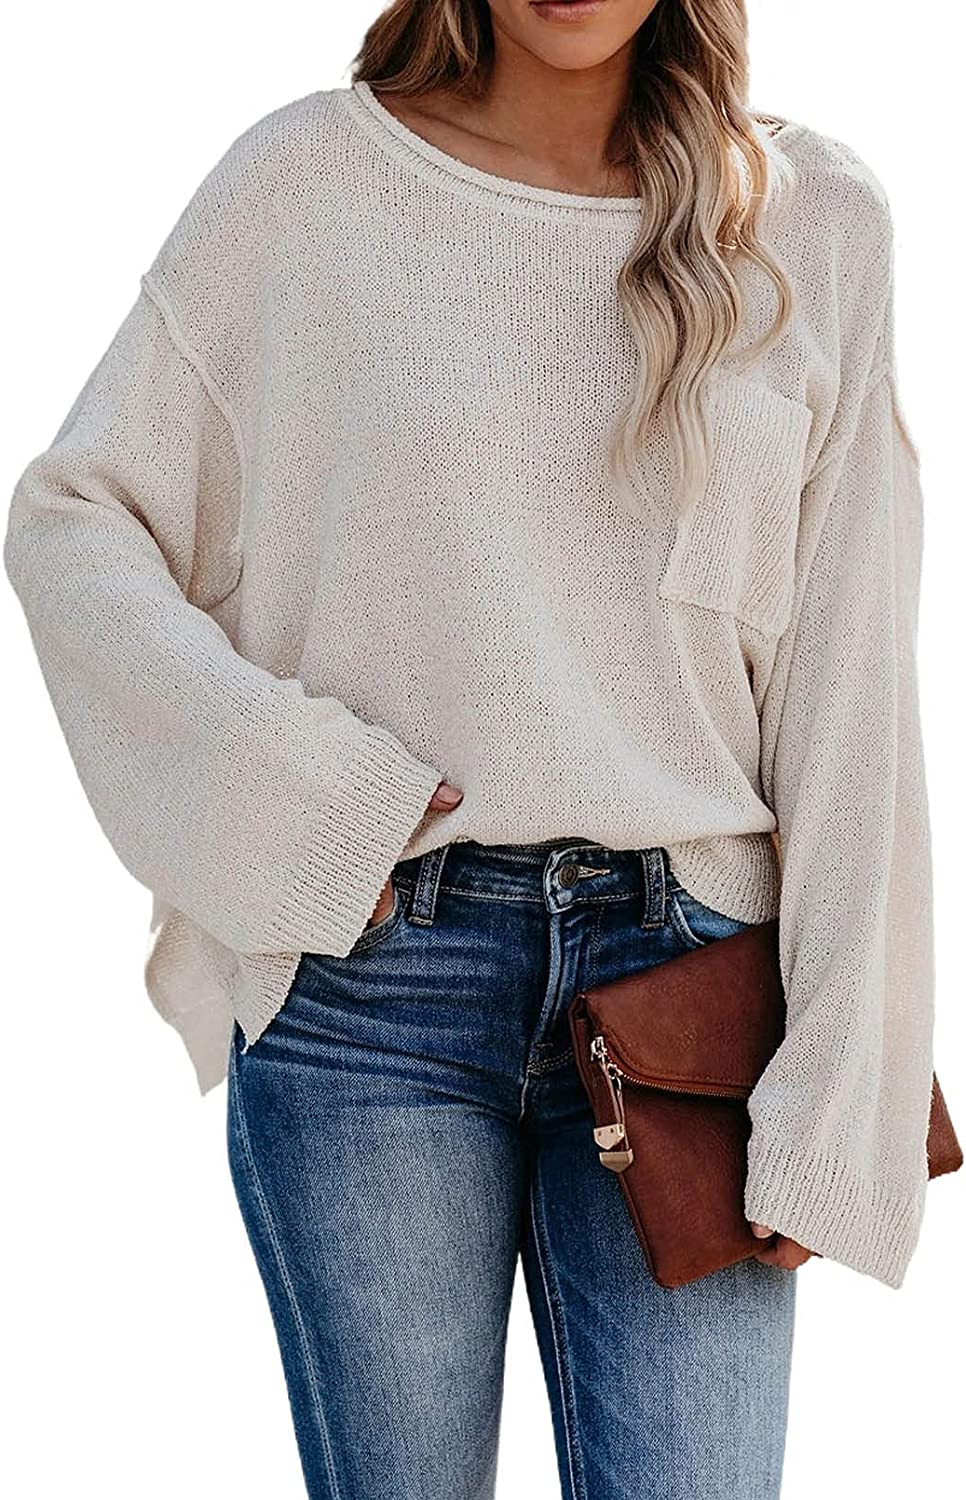 Women's Off Shoulder High Low Oversized Pullover Sweater Casual Bell Sleeve Boat Neck Split Knitted Jumper Tops